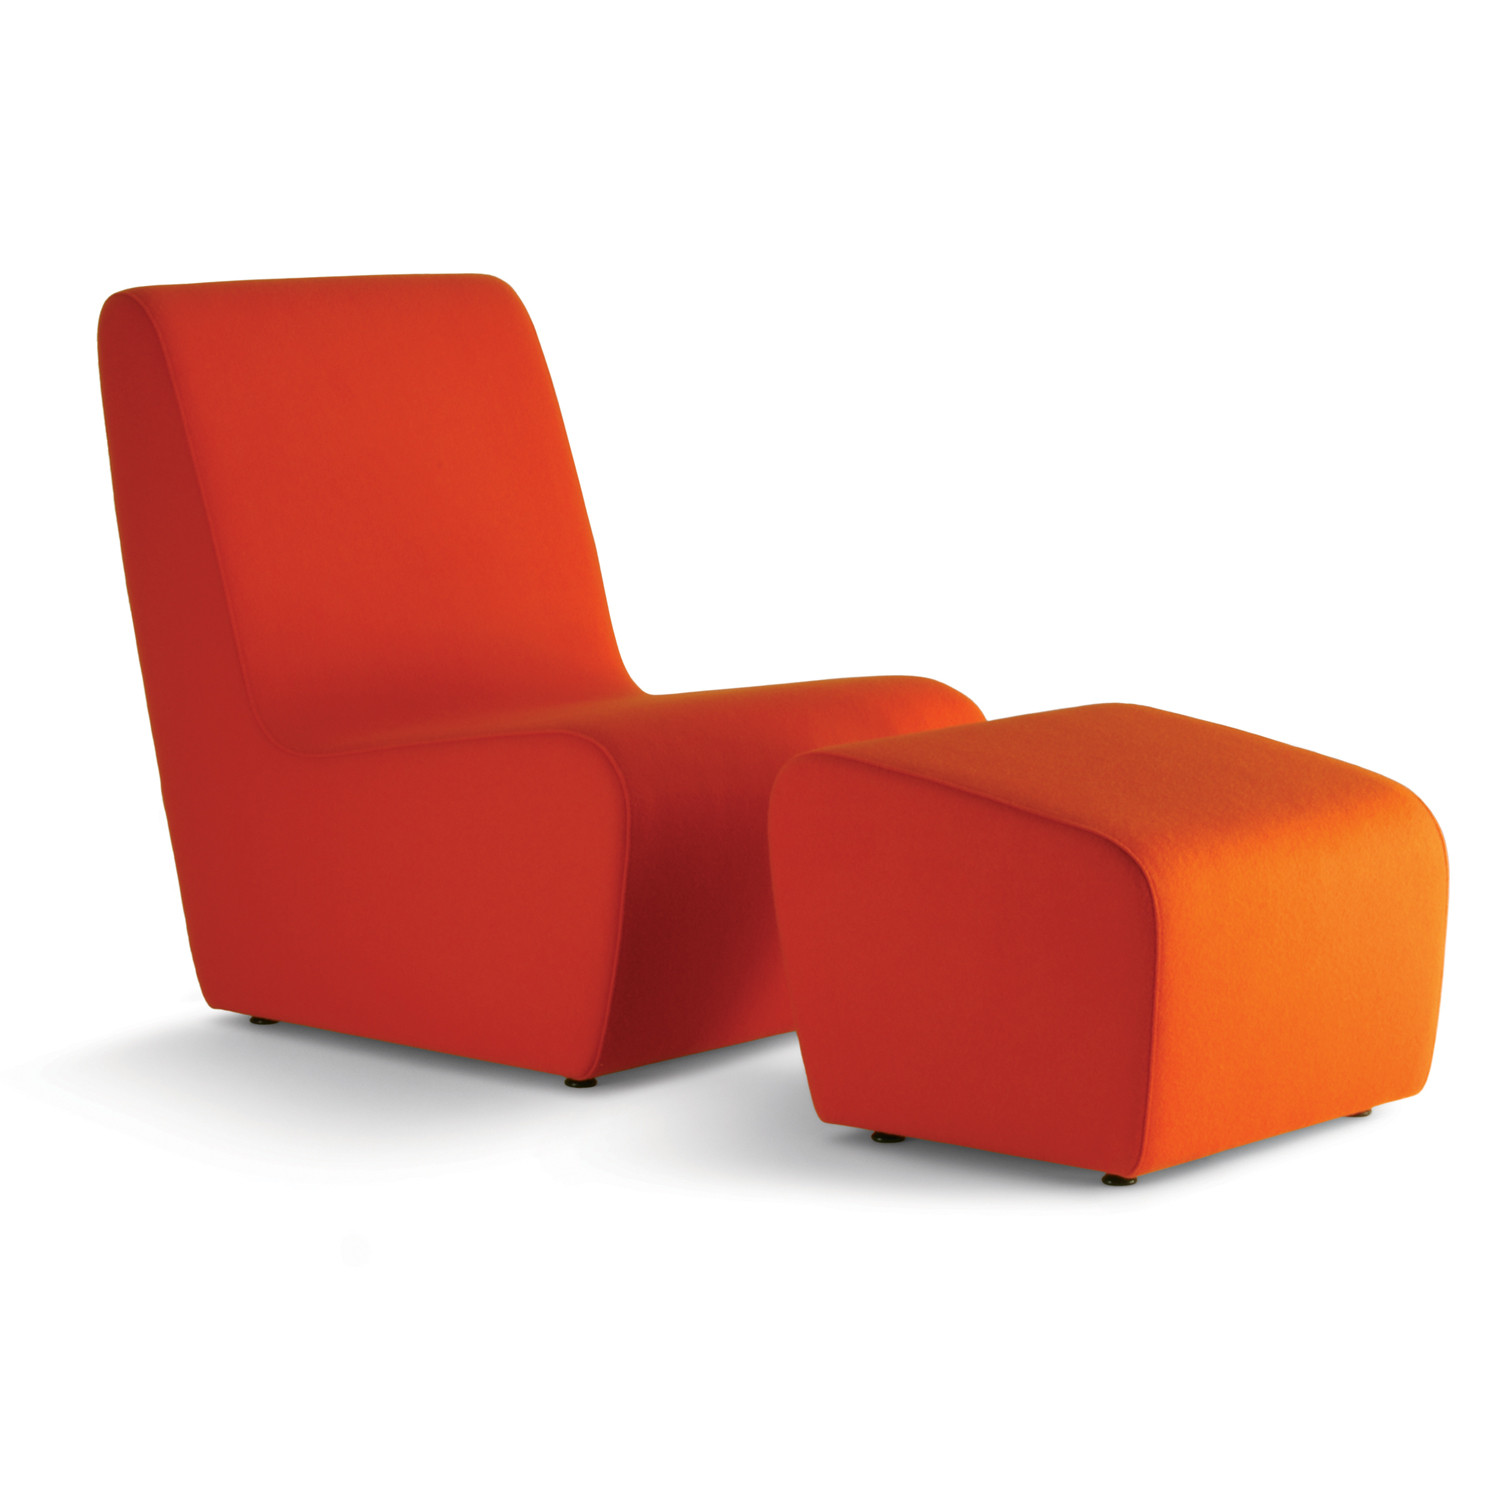 HM55a Chair and HM55h Footstool